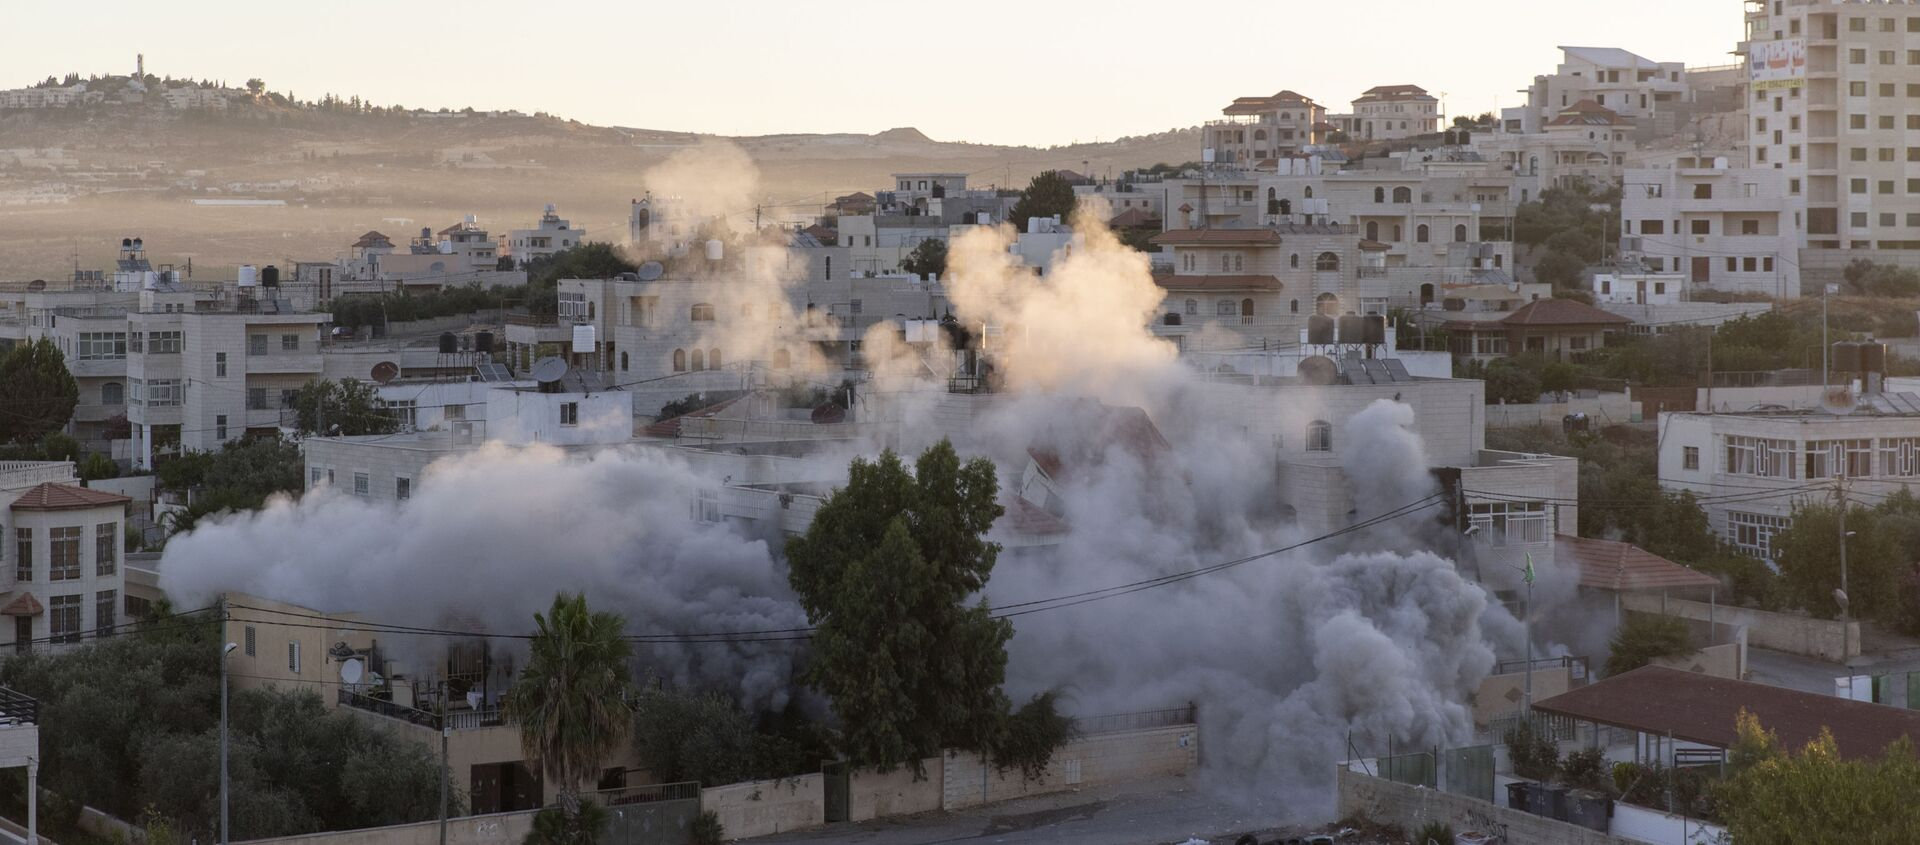 An Israeli army unit demolishes the house of Palestinian American Muntasser Shalaby using controlled explosions, in the West Bank village of Turmus Ayya, north of Ramallah, Thursday, July. 8, 2021.  - Sputnik International, 1920, 08.07.2021